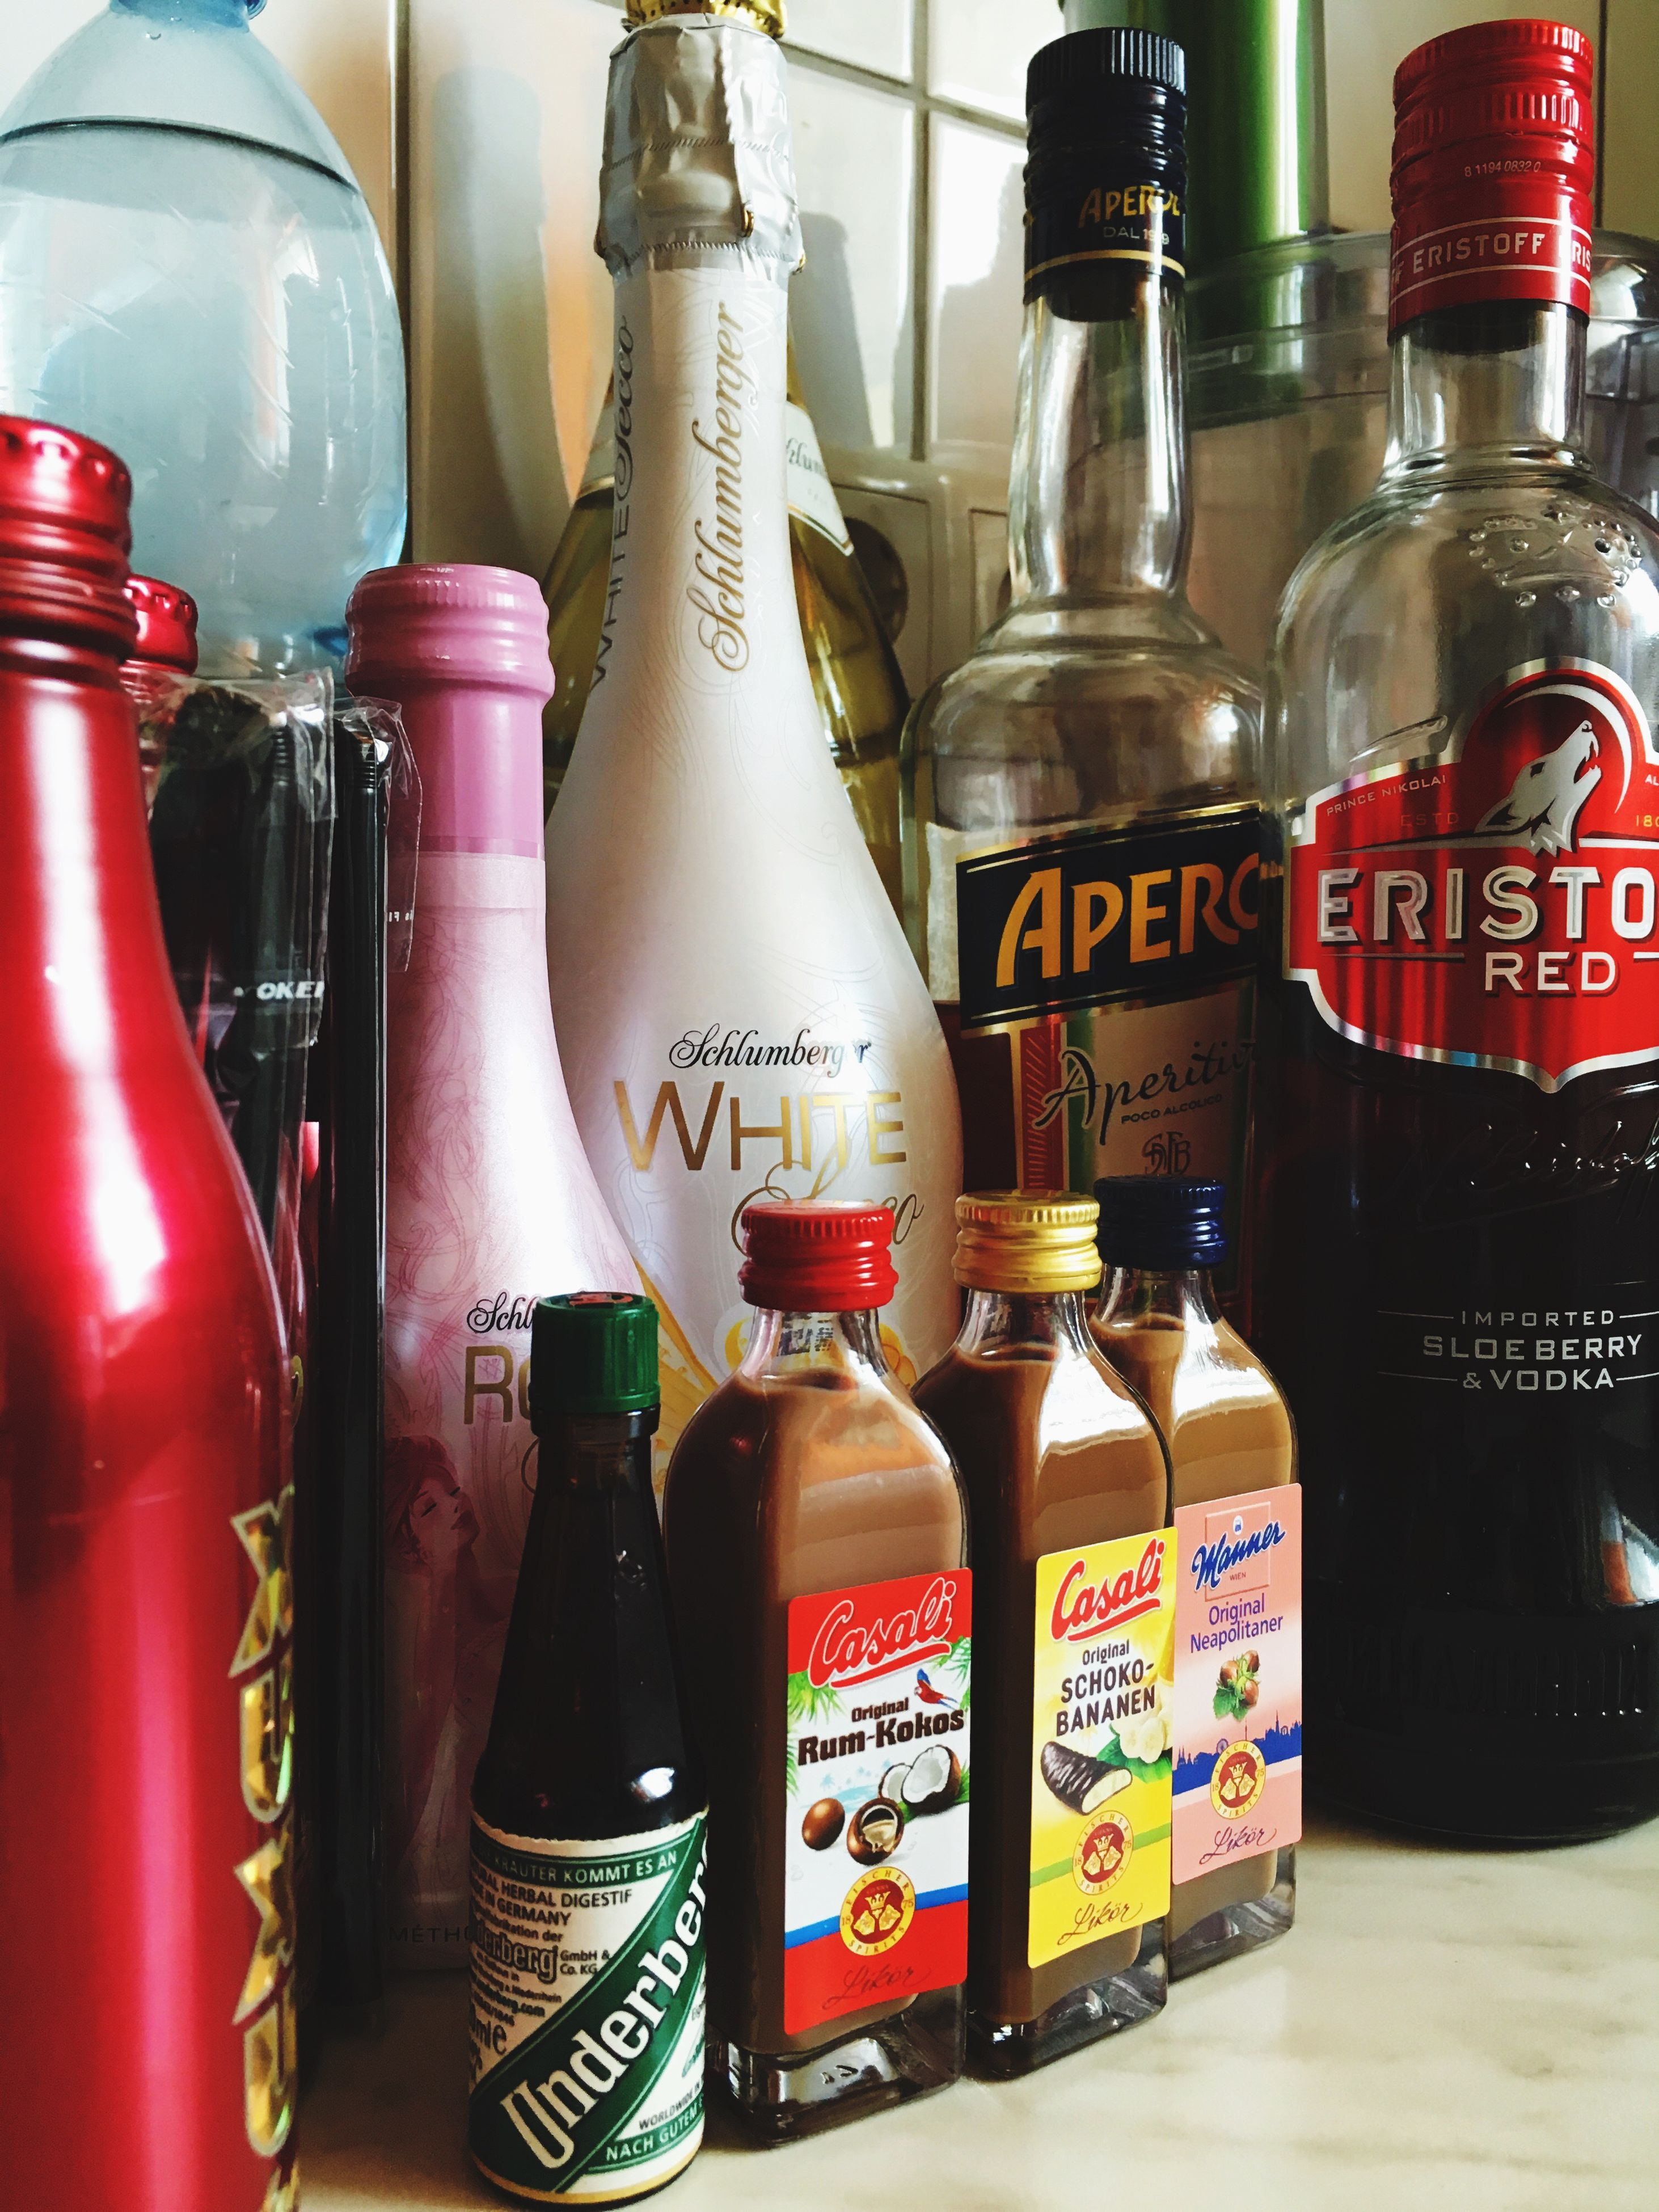 indoors, text, variation, bottle, choice, glass - material, still life, food and drink, western script, communication, large group of objects, drink, arrangement, shelf, close-up, container, abundance, red, transparent, no people